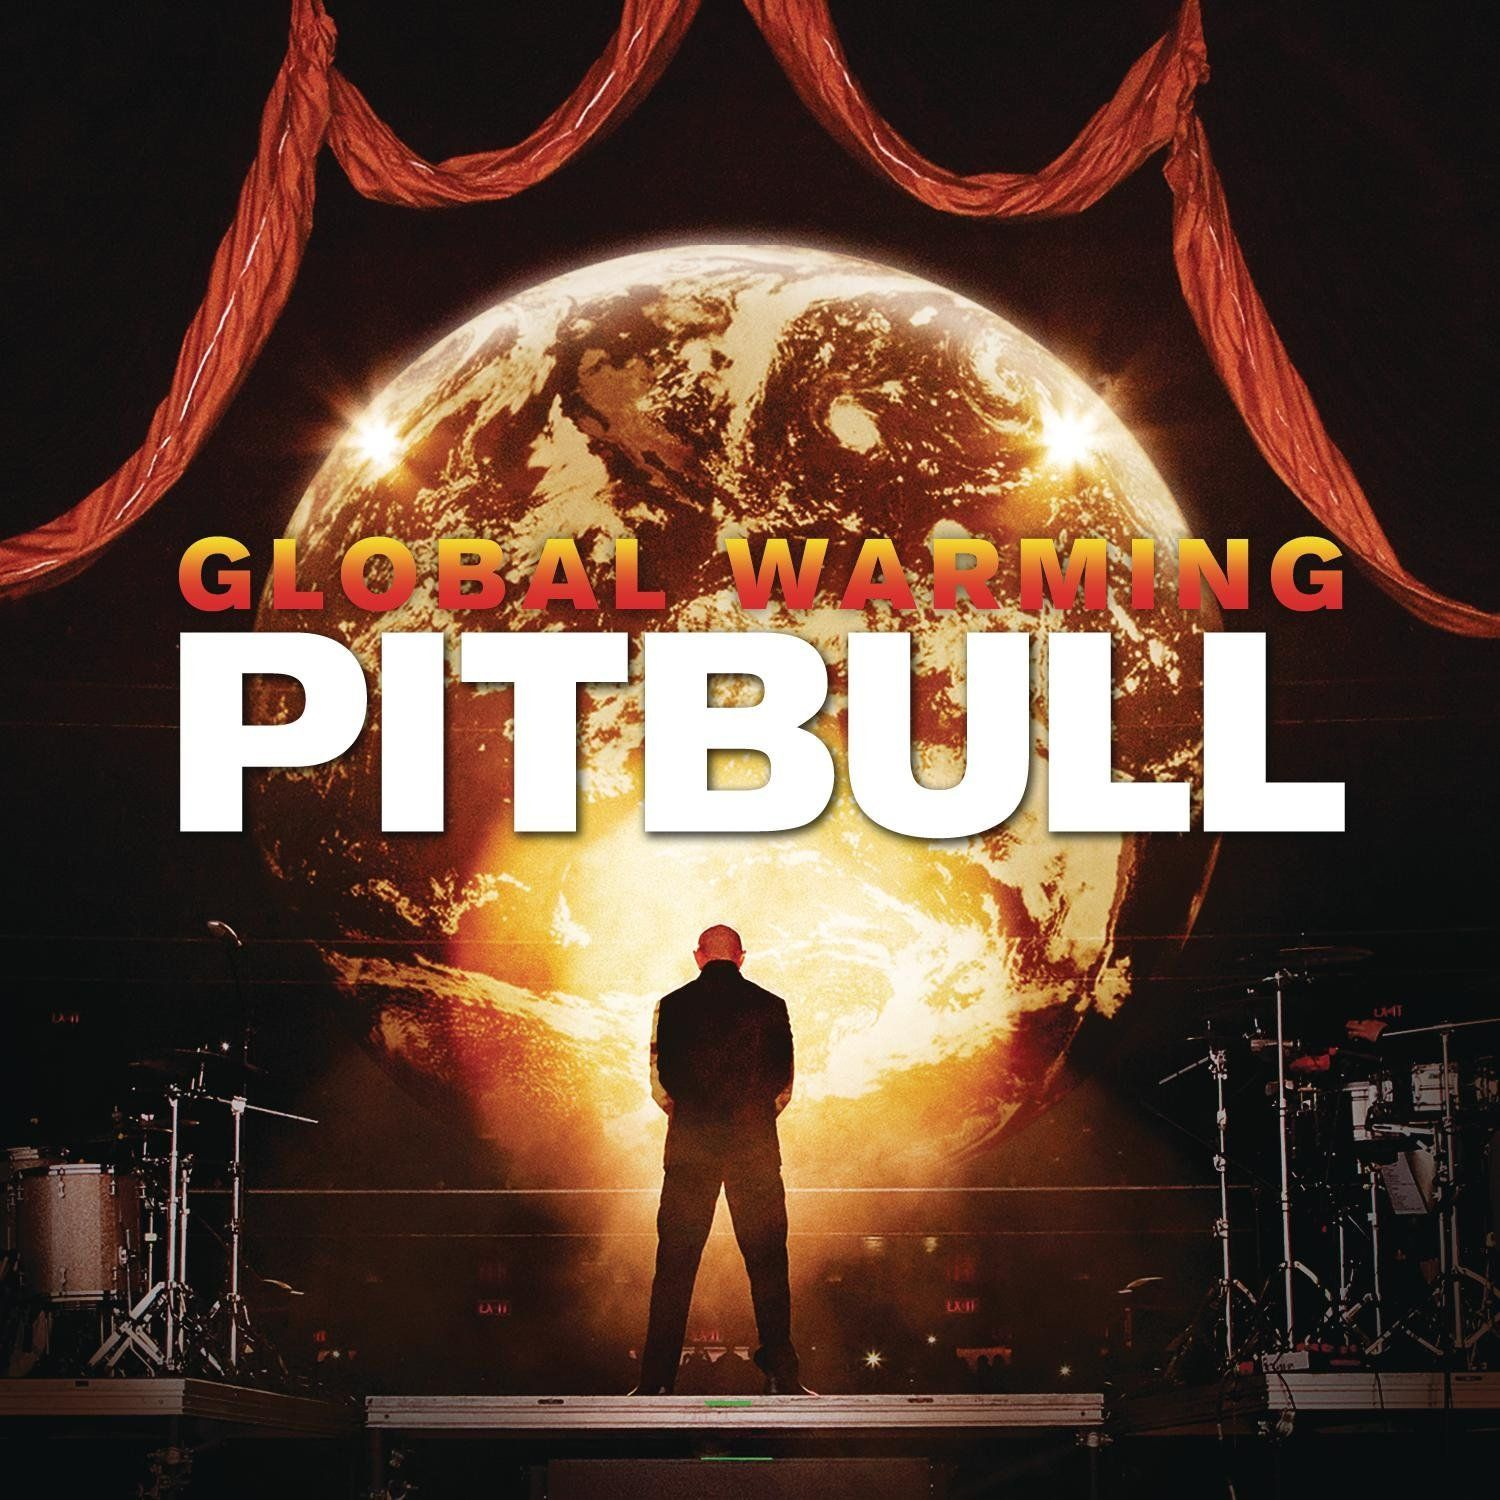 Pitbull - Global Warming album cover